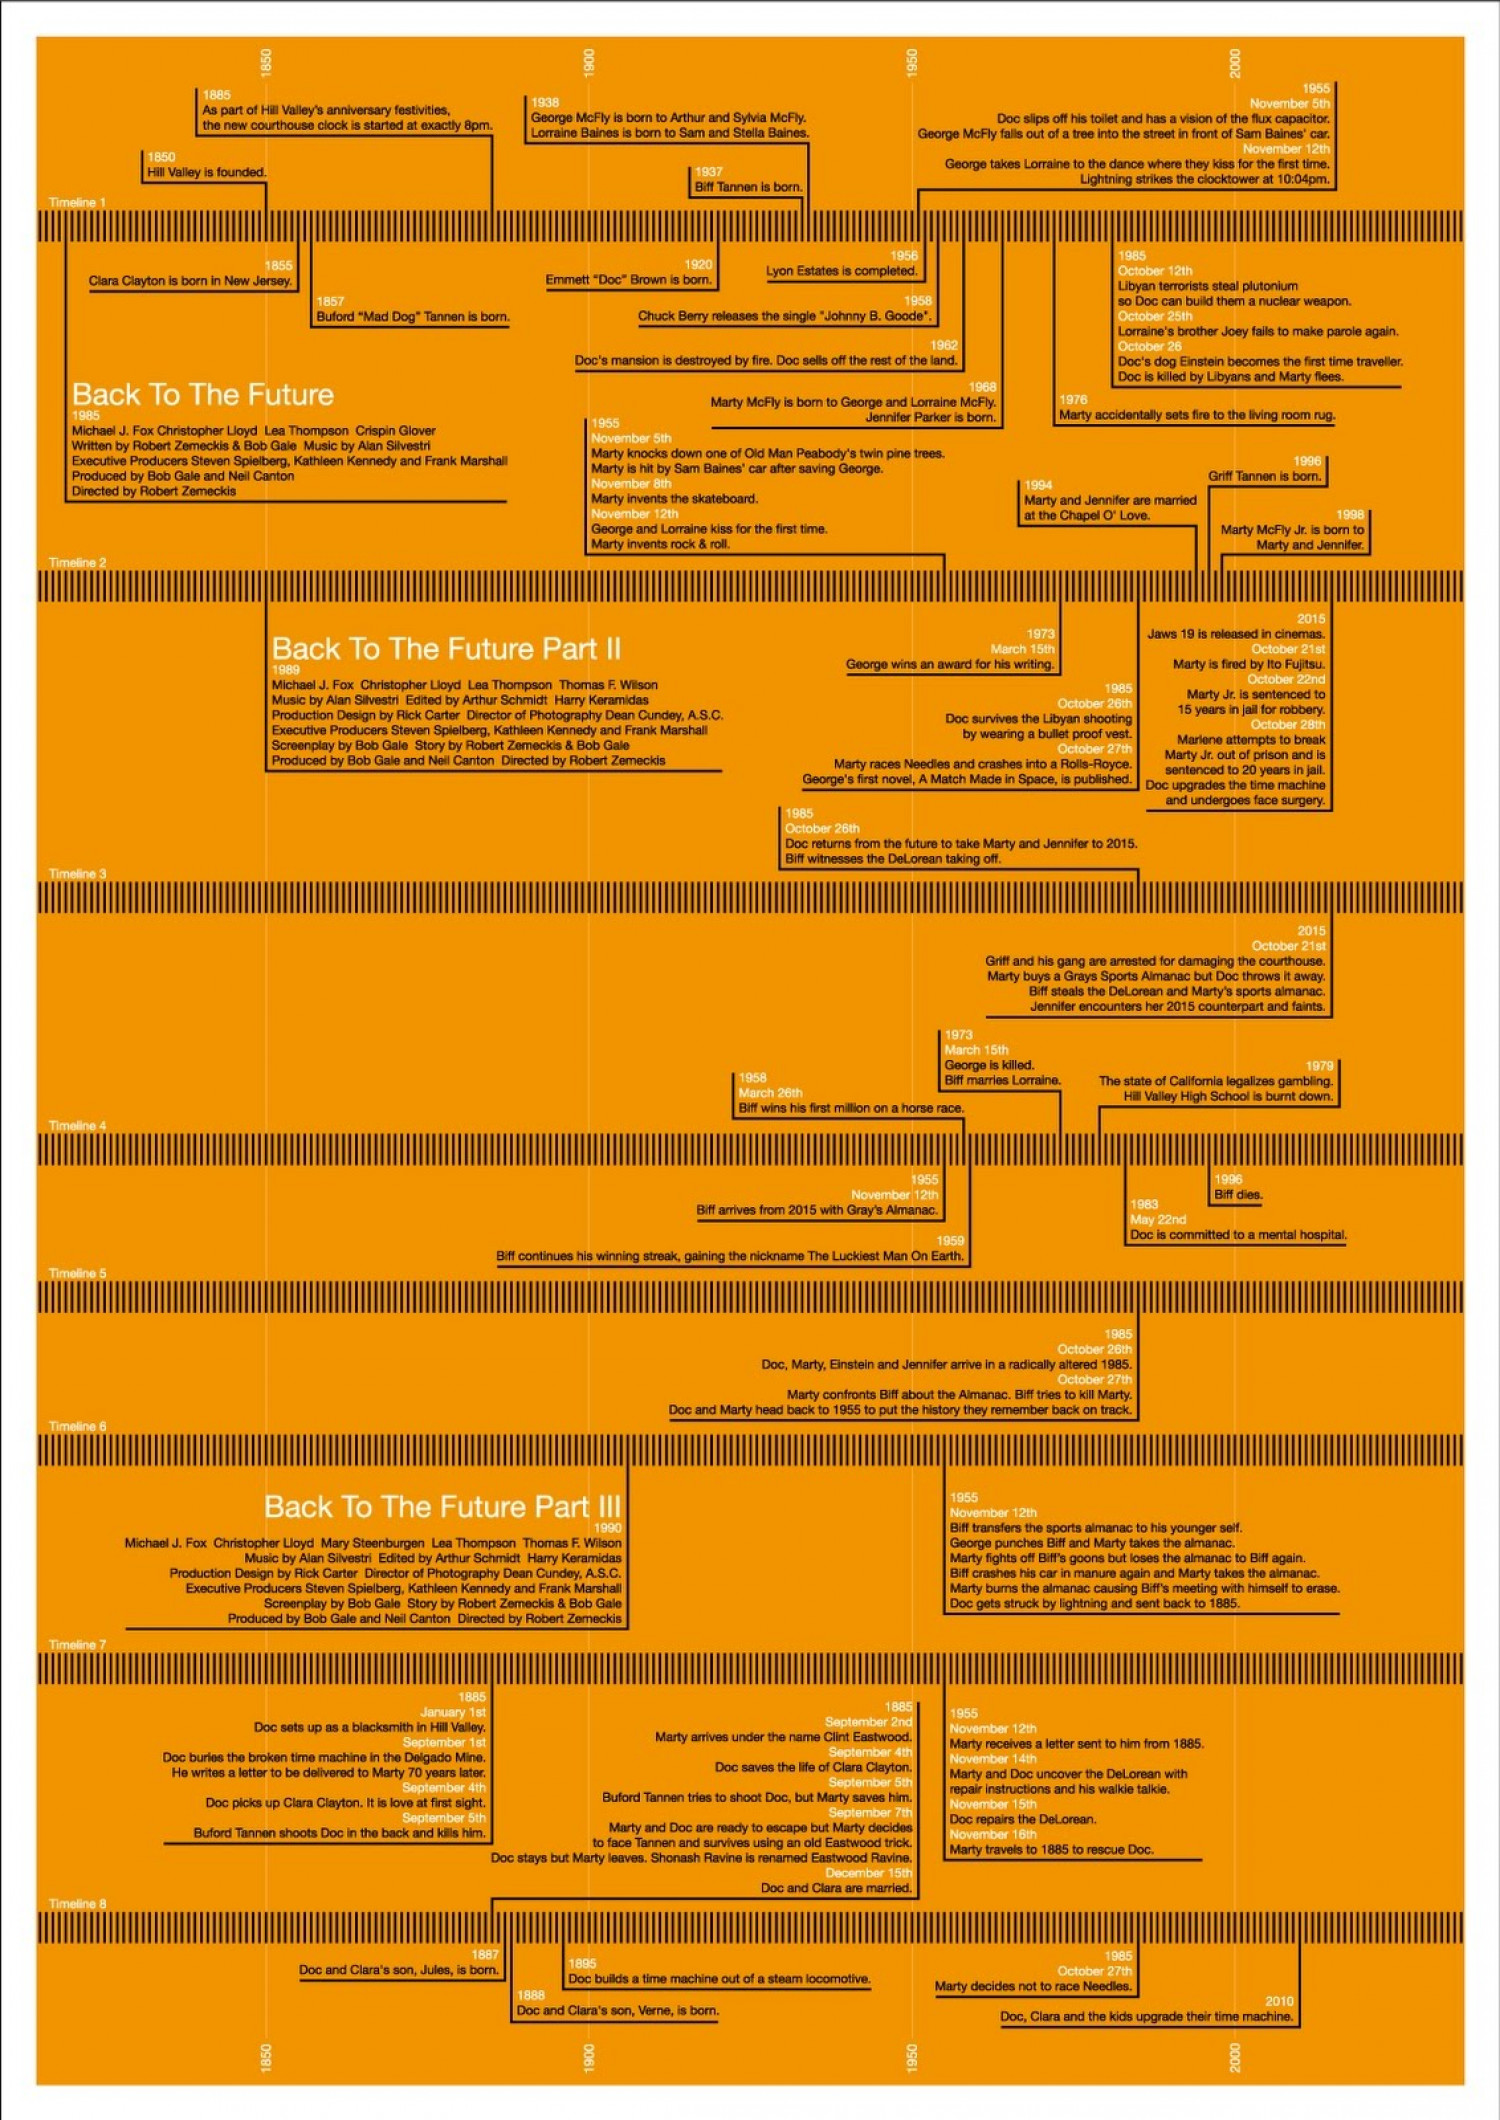 Back To The Future Timeline Infographic